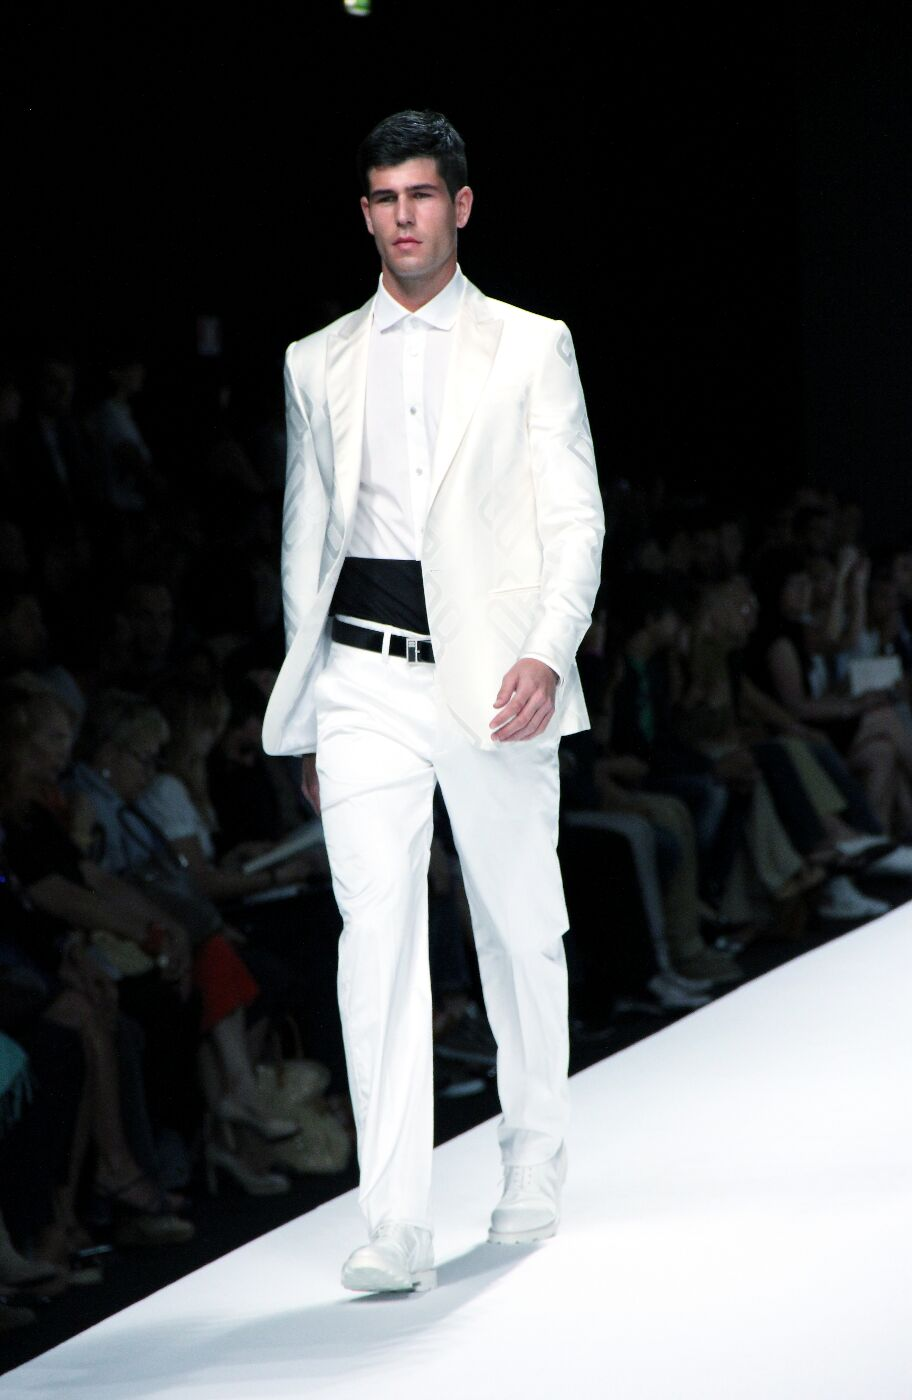 ss-dirk-bikkembergs-sport-couture-2012-ss-spring-summer-2012-milano-fashion-week-dirk-bikkembergs-sport-couture